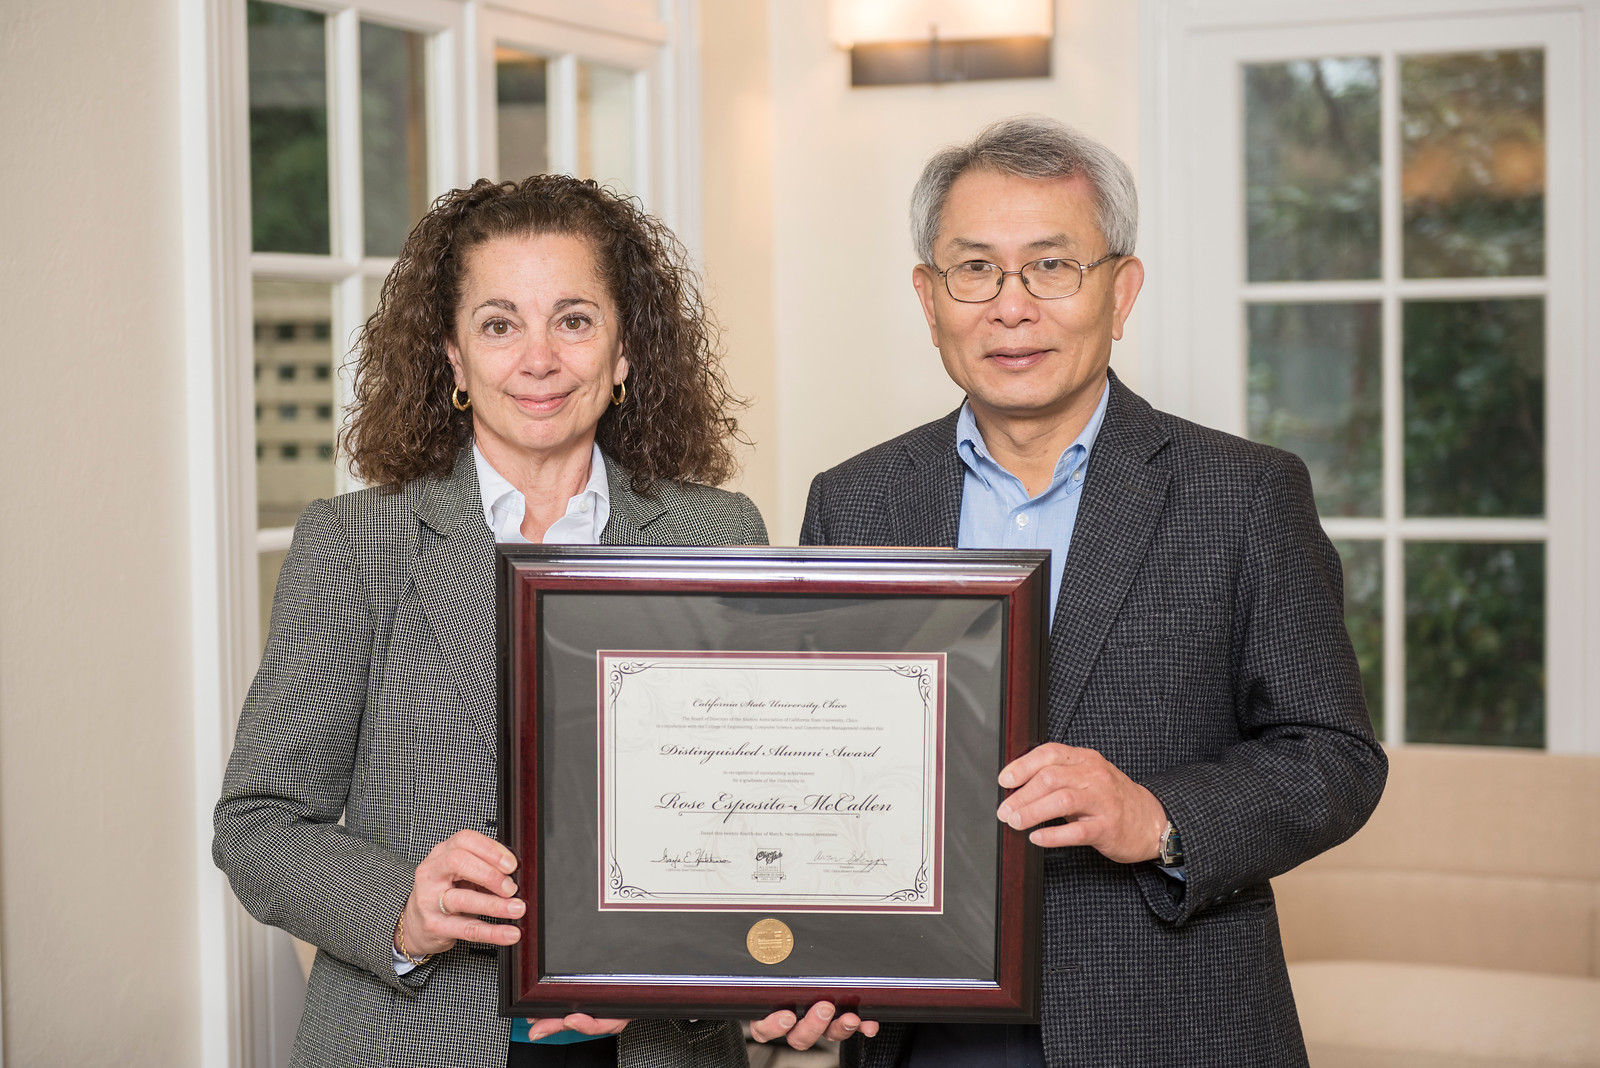 College of Engineering, Computer Science, and Construction Management Distinguished Alumni Rose Esposito-McCallen (BS, Mechanical Engineering, 1980) (left) receives recognition by Chuen H. Hsu (right) on Friday, March 24, 2017 in Chico, Calif. (Jason Halley/University Photographer)